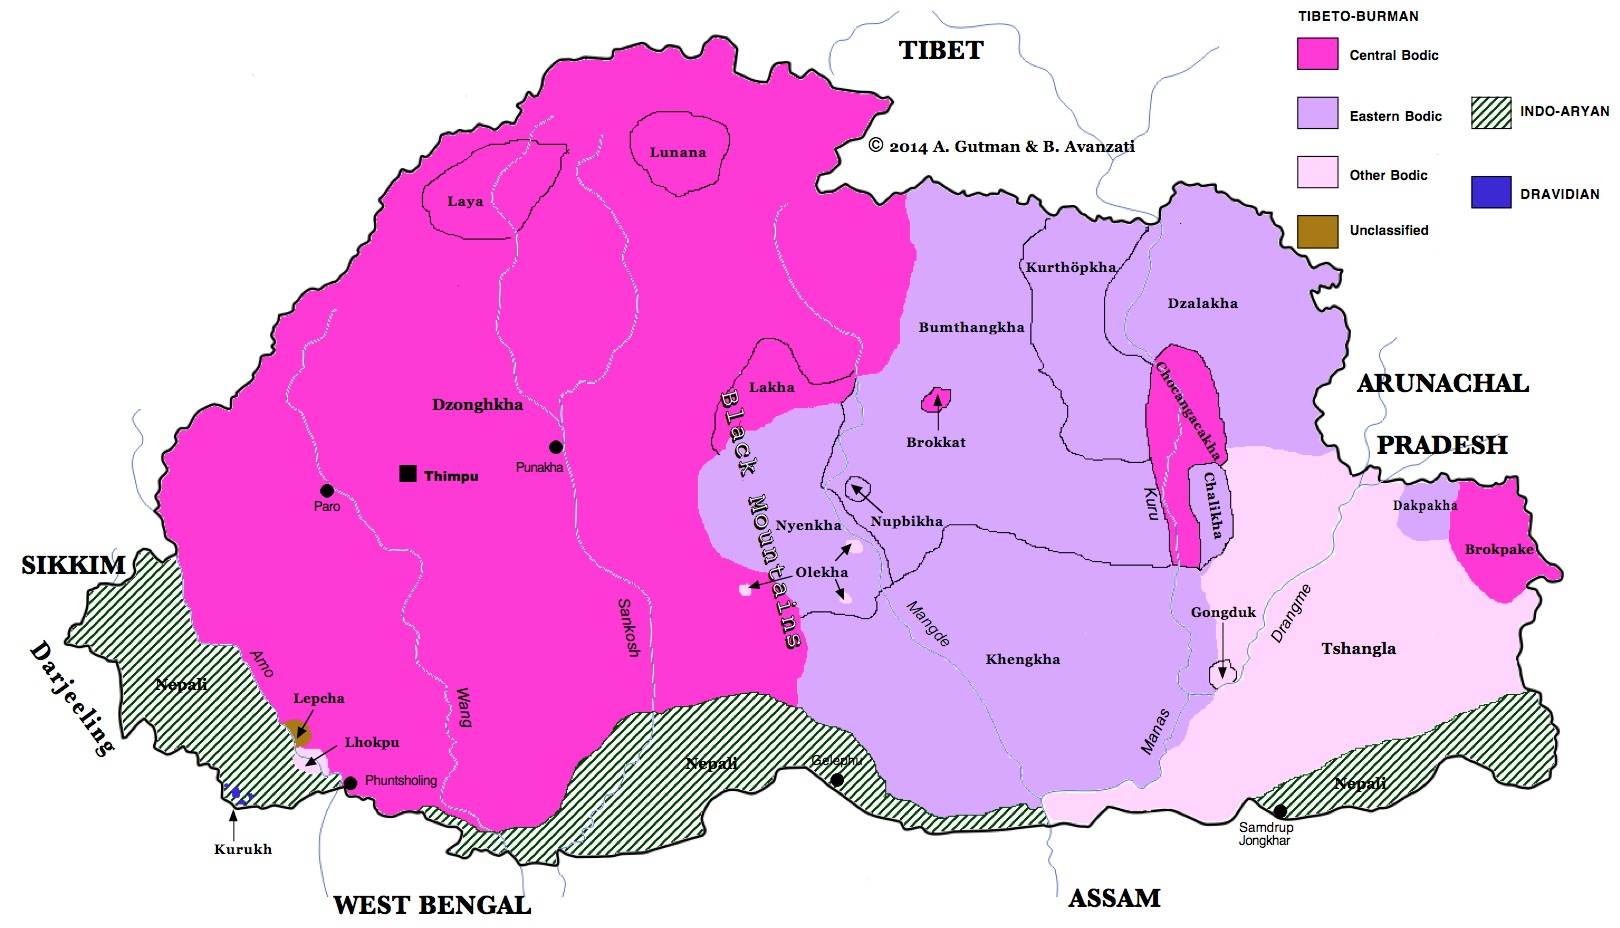 LINGUISTIC MAP OF BHUTAN on map of chile, united states of america, map of india, map of peru, map of sri lanka, map of japan, map of nepal, map of myanmar, map of k2, jetsun pema, map of china, map of middle east, map of iraq, map of singapore, map of tibet, south asia, sri lanka, map of brunei, map of philippines, map of liechtenstein, map of bangladesh, map of turkey, map of himalayas, map of asia,